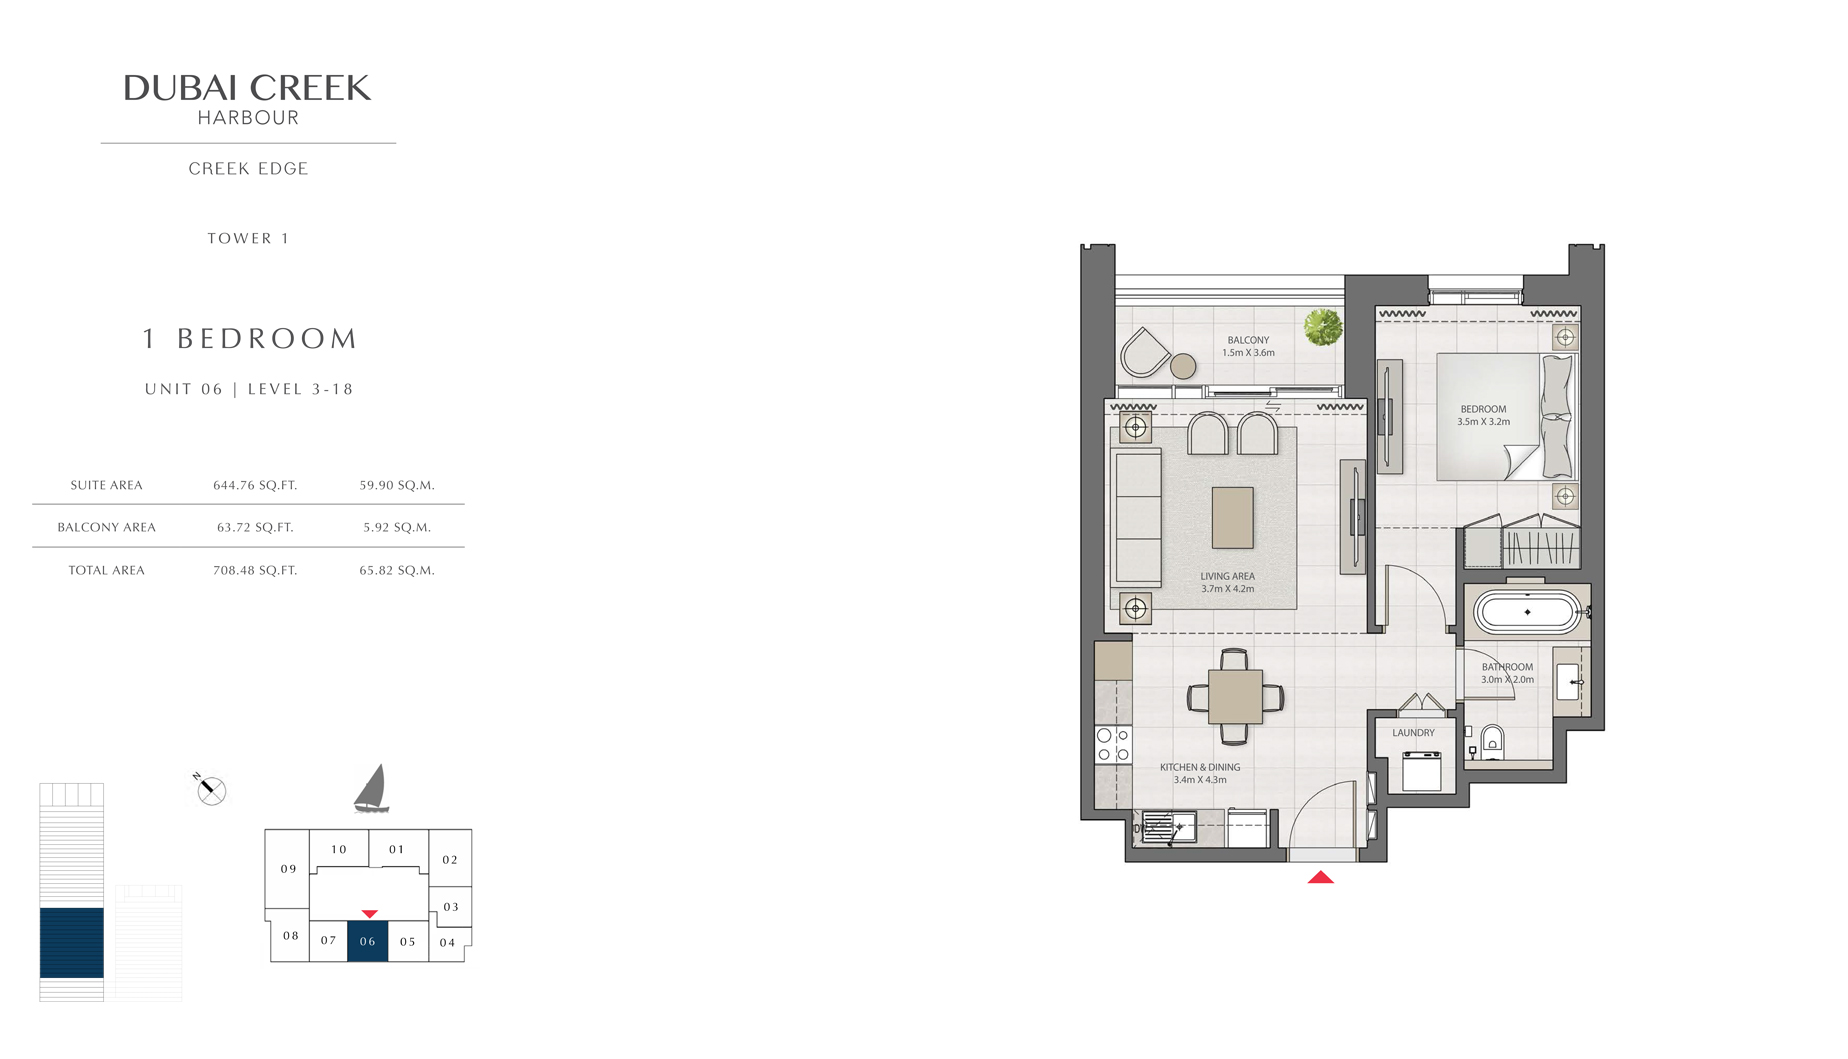 1 Bedroom Tower 1 Unit 06 Level 3-18  Size 708 sq.ft